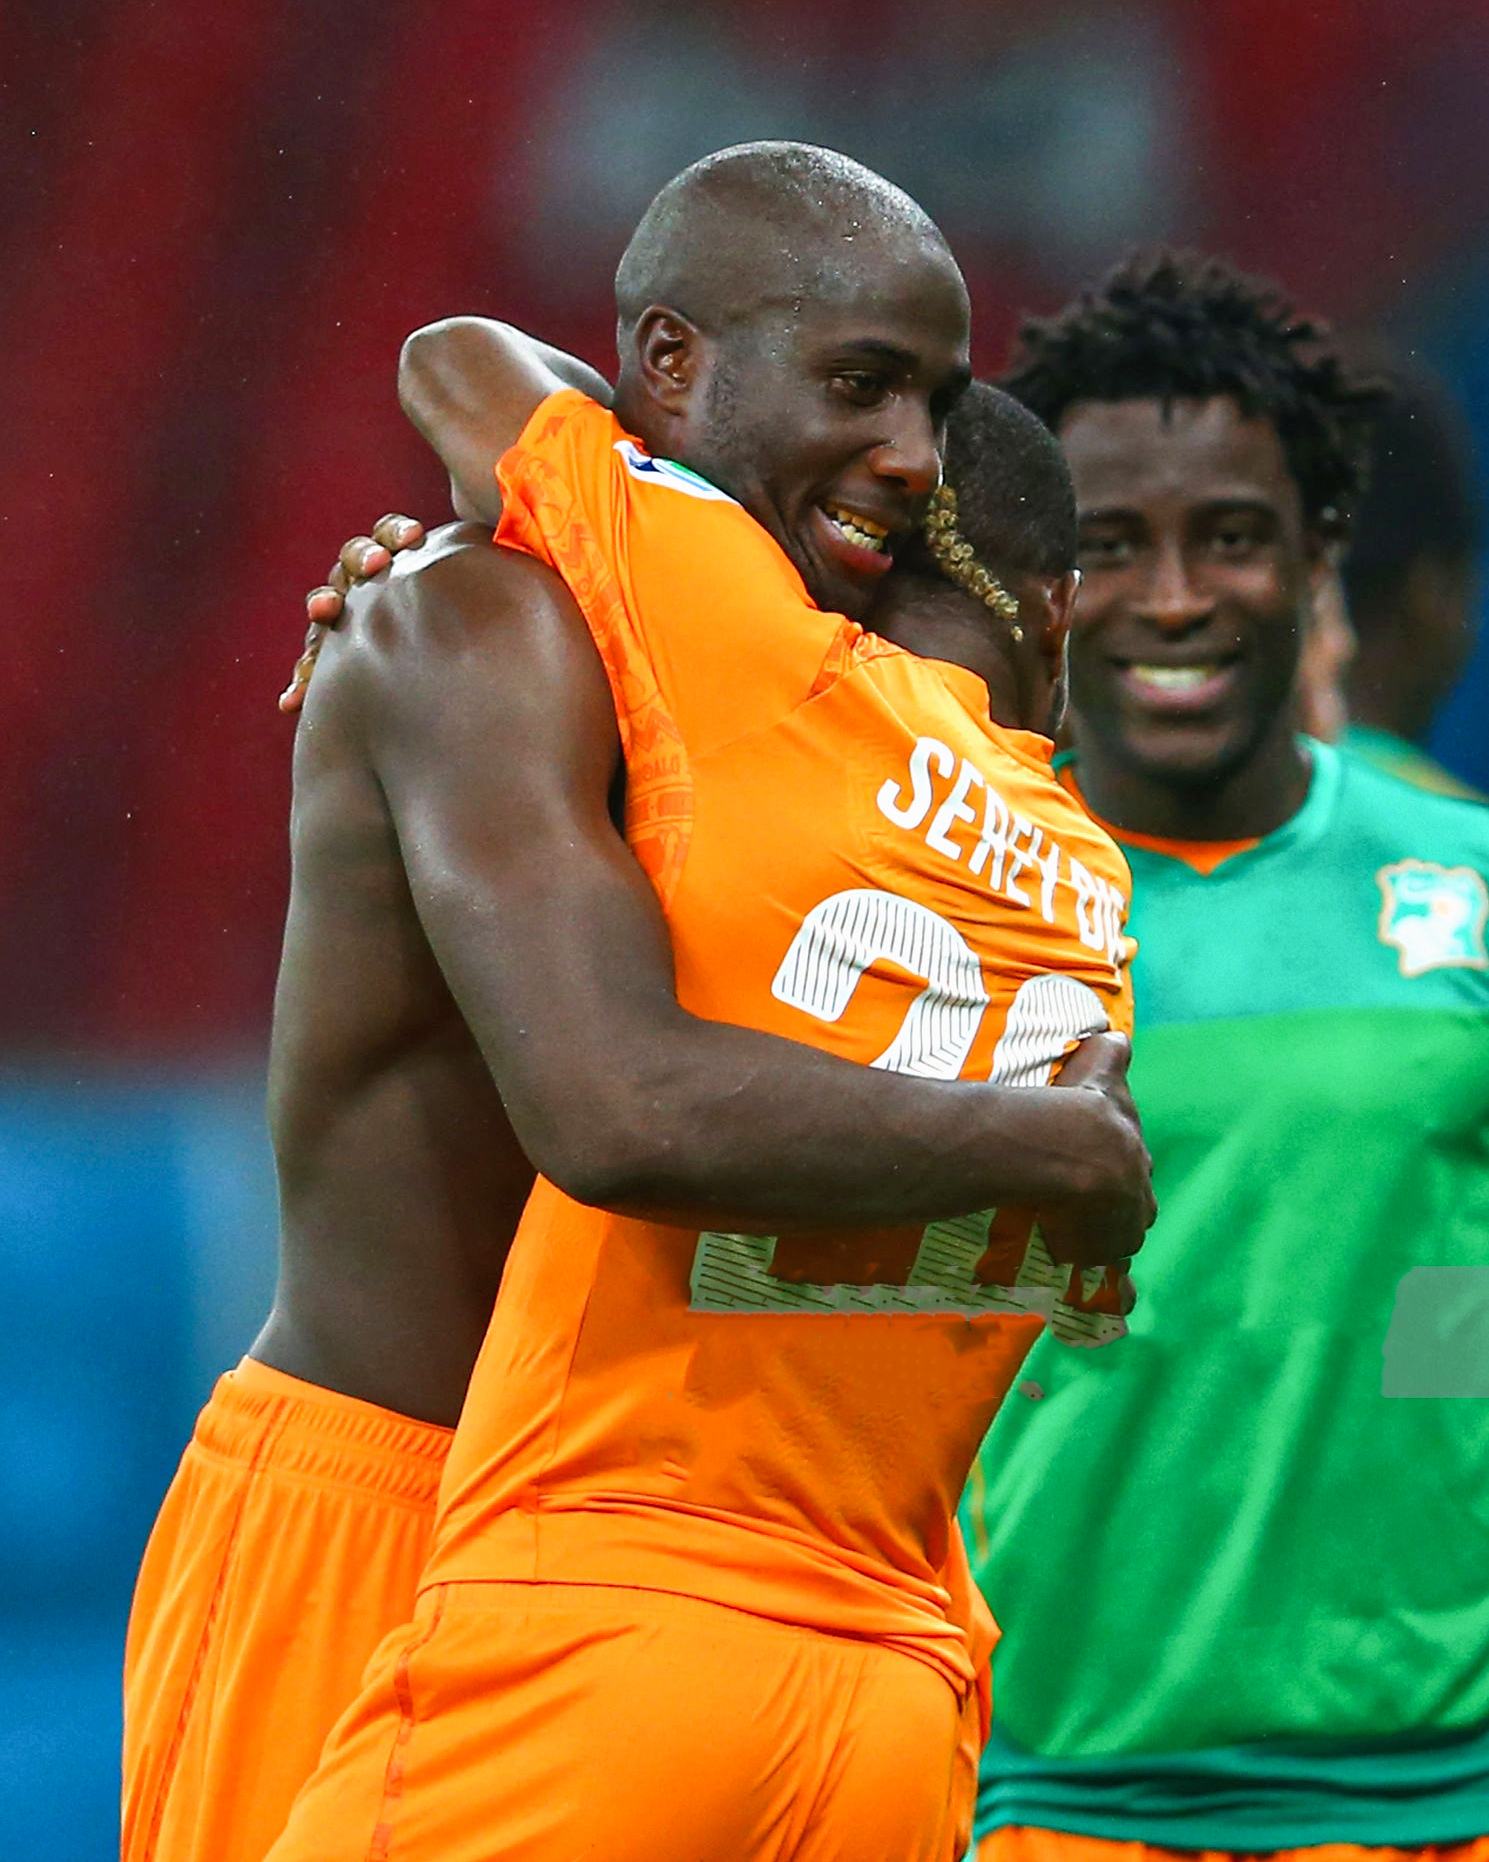 RECIFE, BRAZIL - JUNE 14: Sol Bamba of the Ivory Coast (L) hugs teammates Die Serey after defeating Japan 2-1 during the 2014 FIFA World Cup Brazil Group C match  between the Ivory Coast and Japan at Arena Pernambuco on June 14, 2014 in Recife, Brazil.  (Photo by Mark Kolbe/Getty Images)